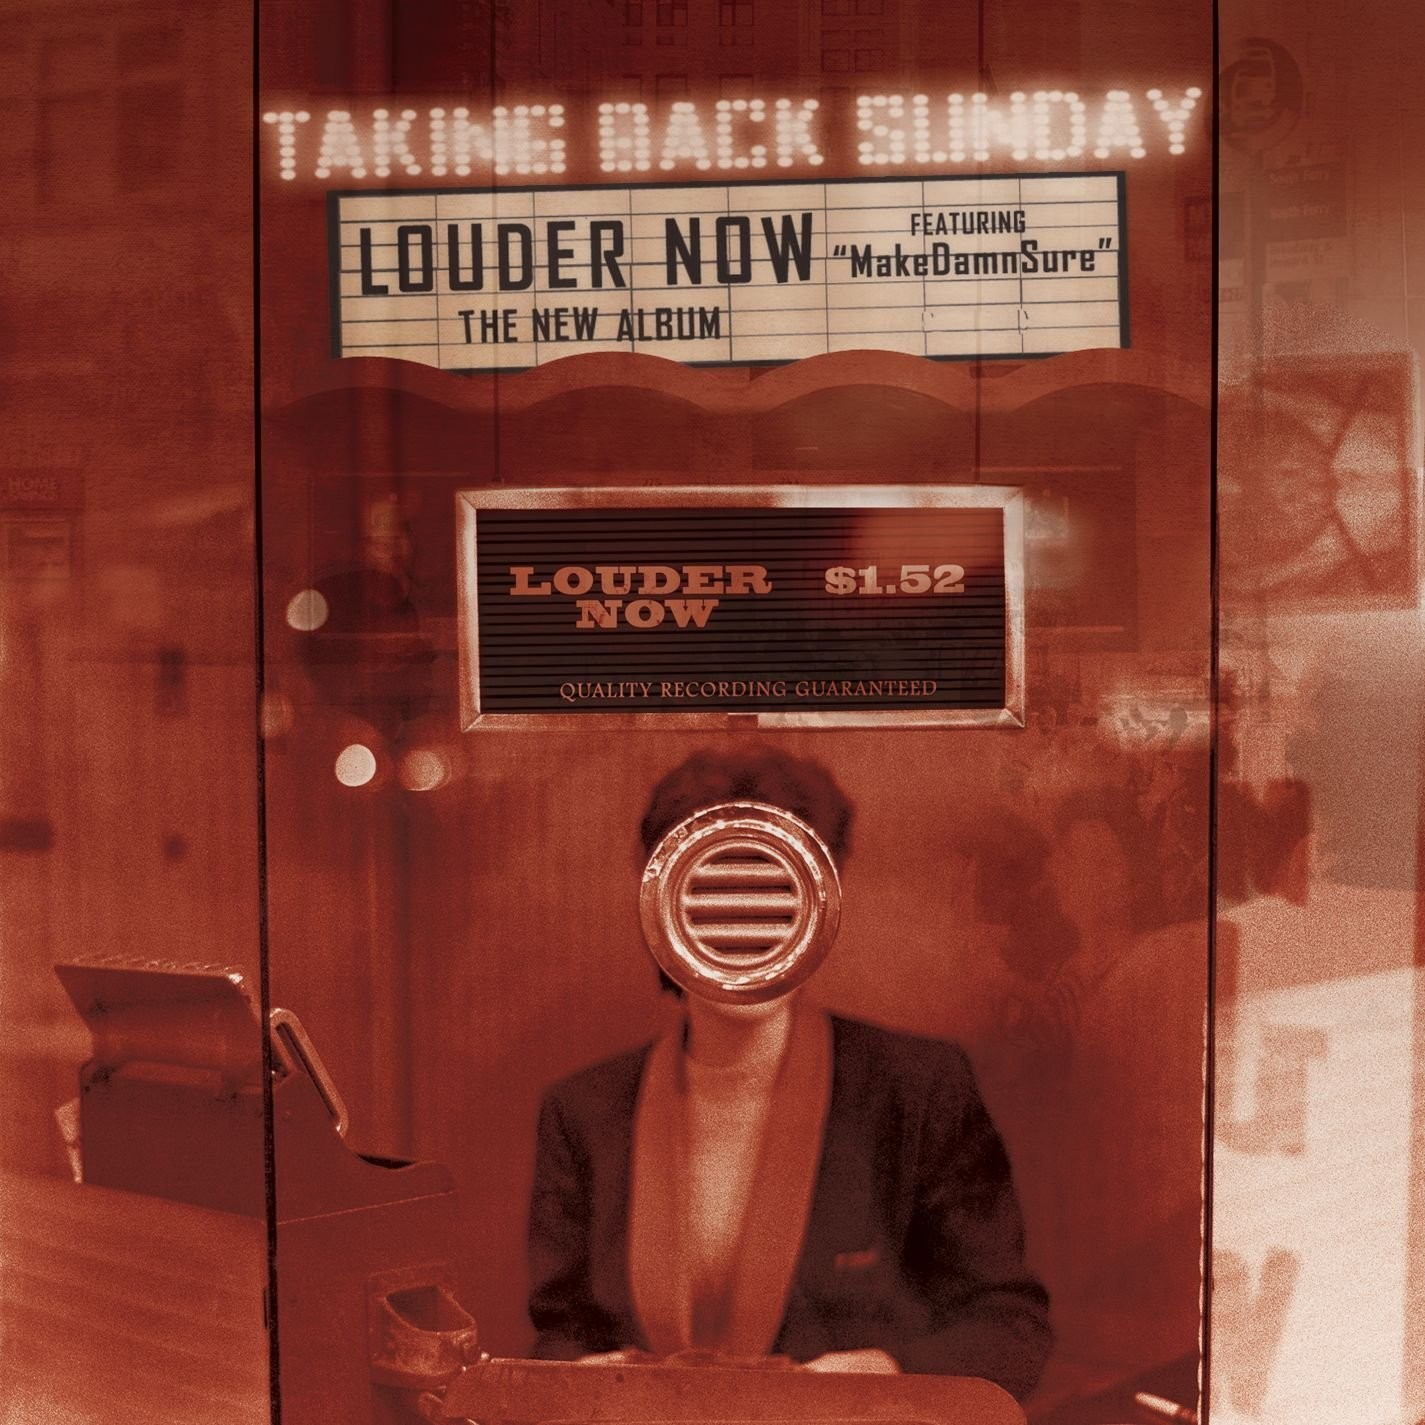 Taking Back Sunday - Louder Now LP